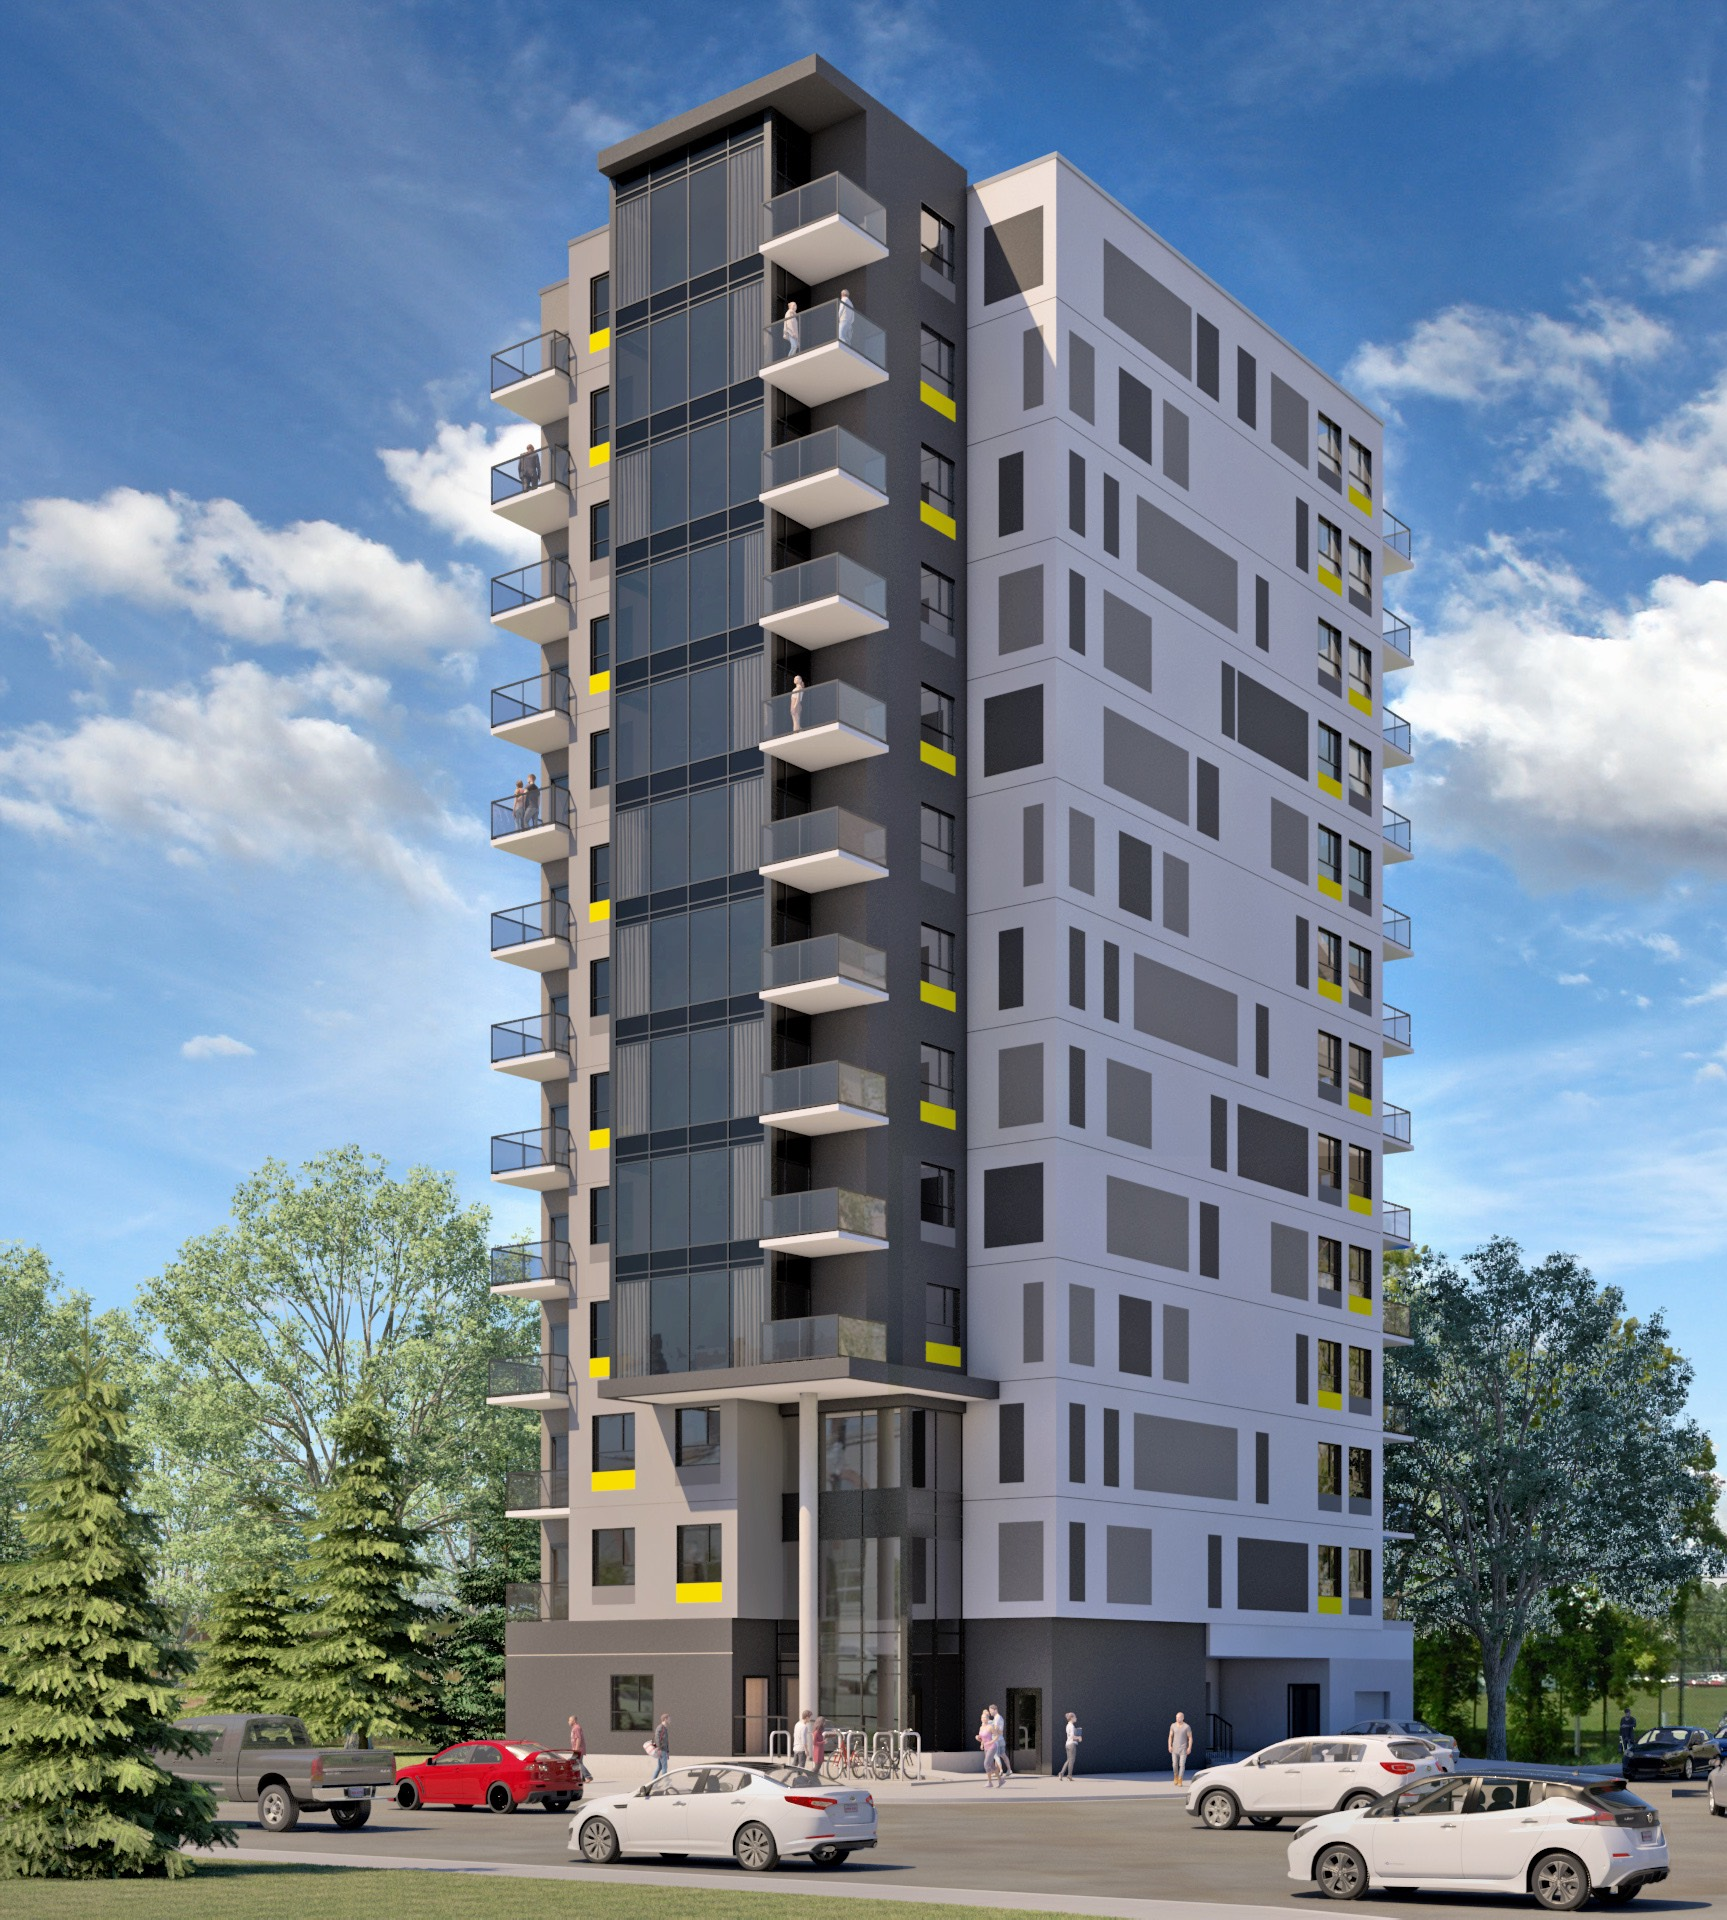 The Nest in Mission will offer waterfront living (Elbow River) at very attractive prices, partly because there are no parking stalls for tenants. This is truly urban living.